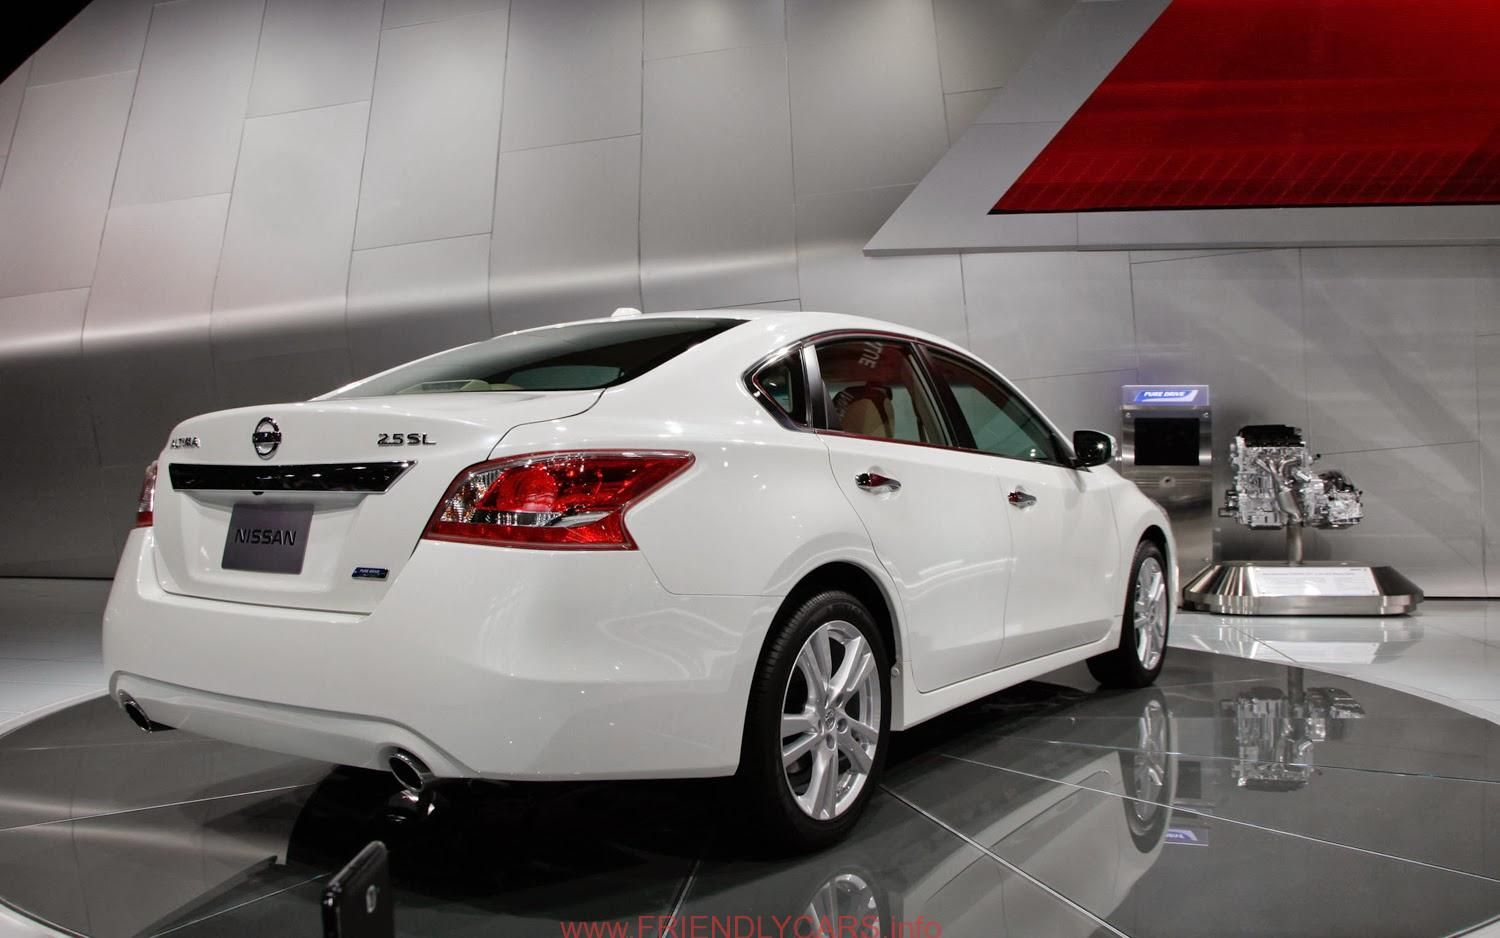 Awesome nissan altima coupe 2015 car images hd eny car nissan altima